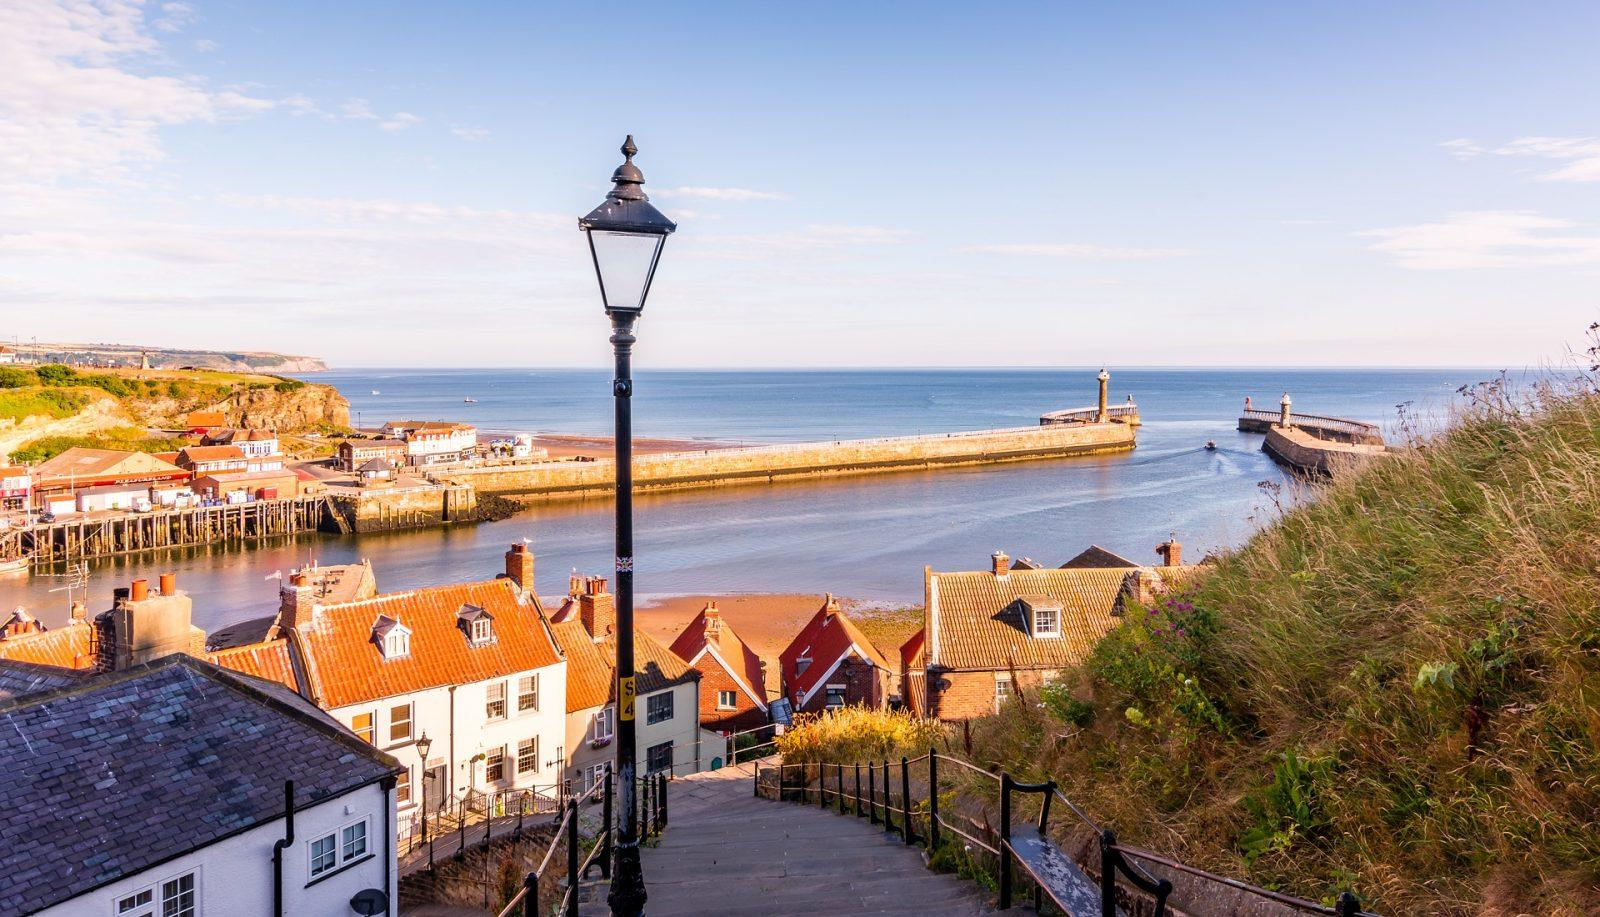 Astonishing 12 Dog Friendly Holiday Cottages In Whitby The Yorkshire Press Home Interior And Landscaping Oversignezvosmurscom